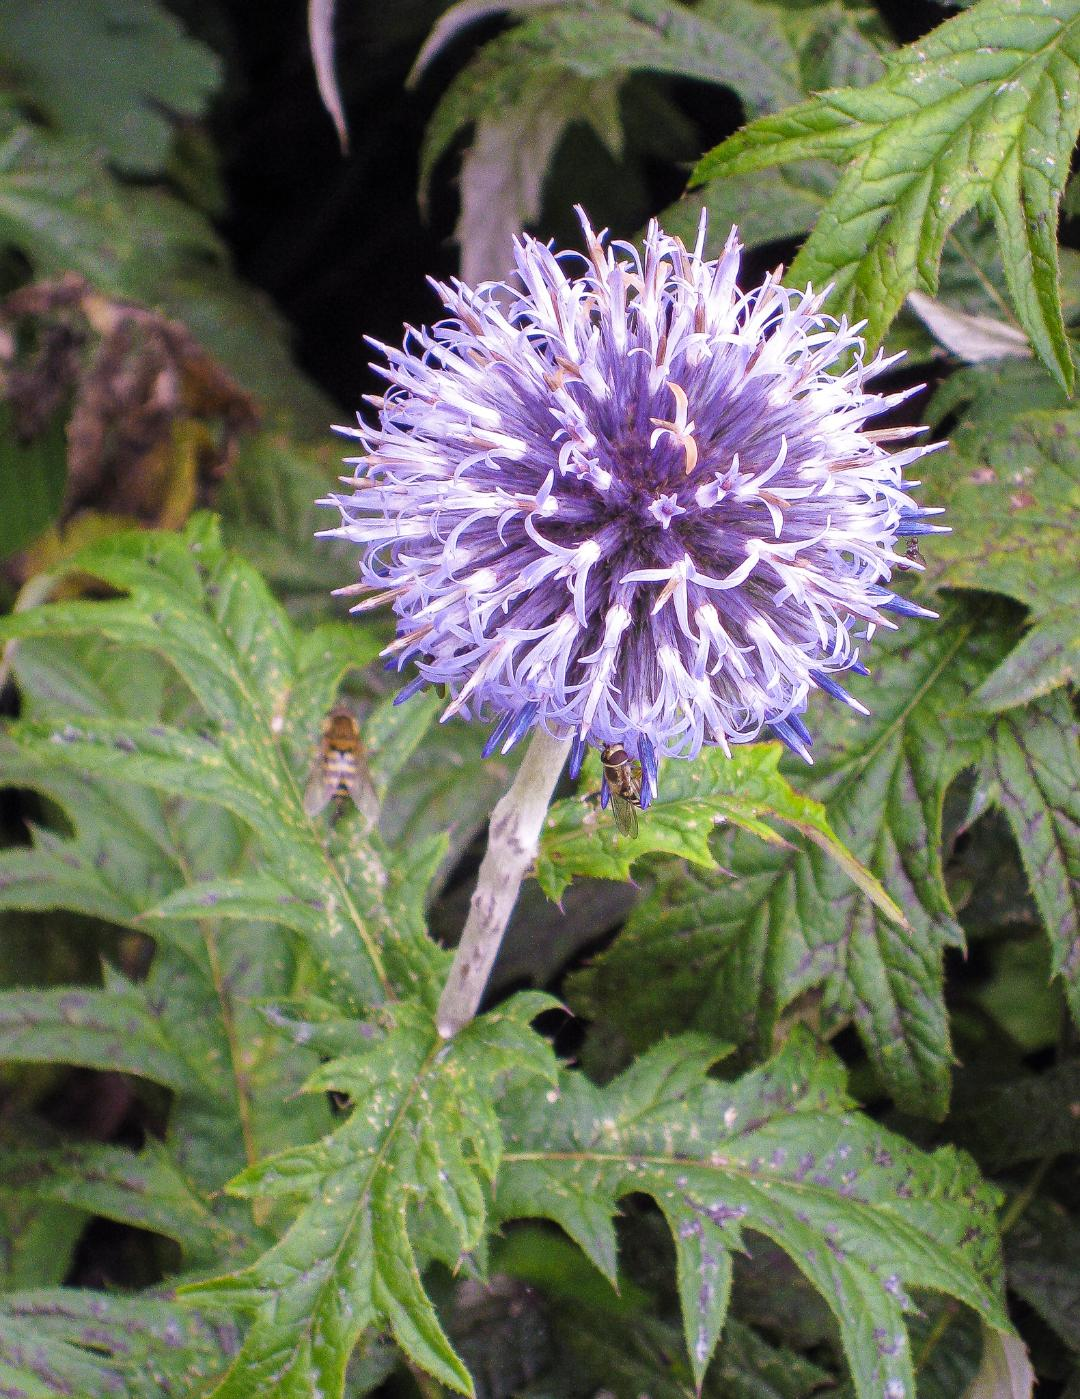 Echinops by Tony Phillips